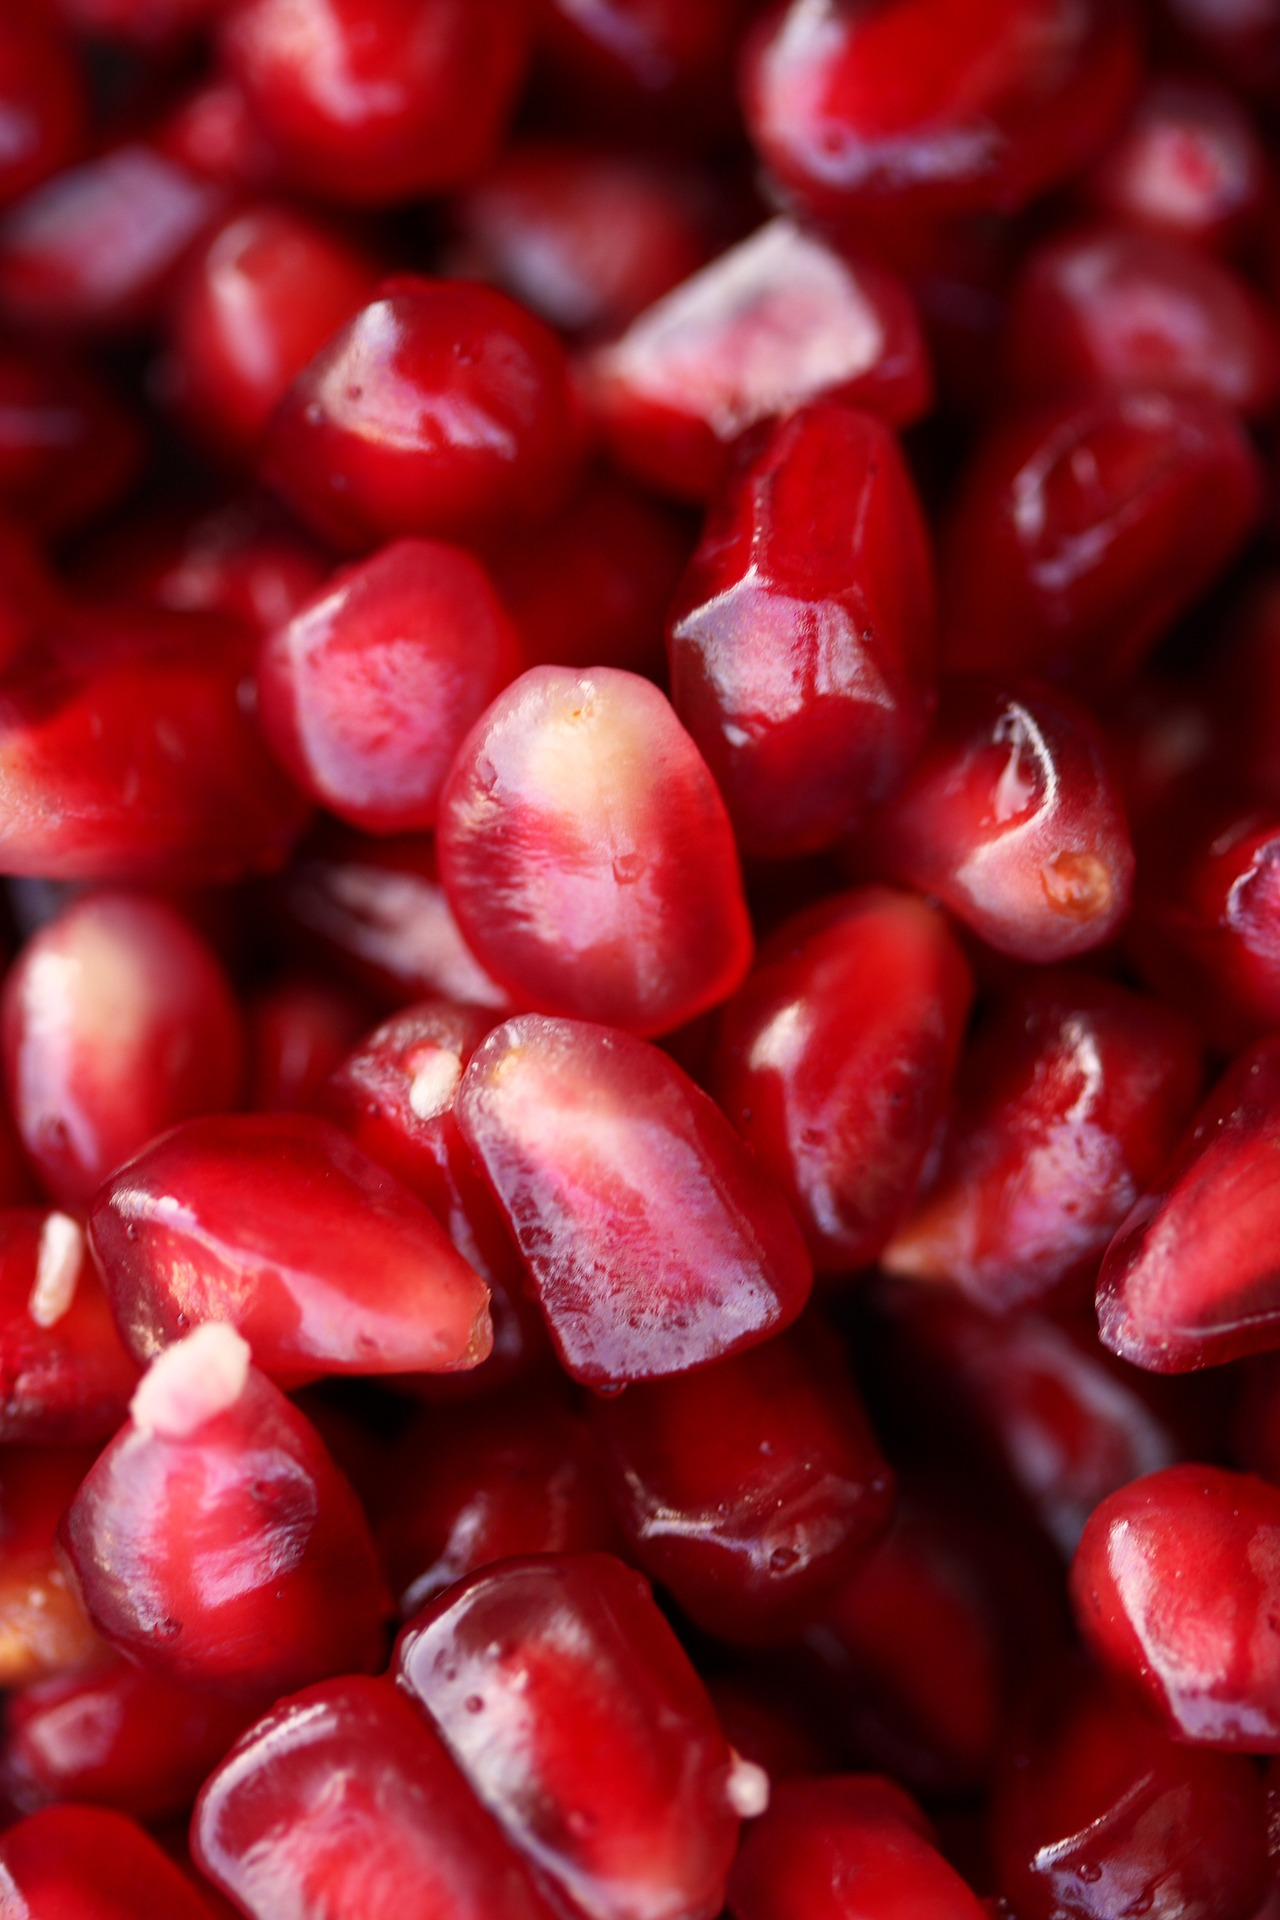 pomegranate-2350545_1920.jpg